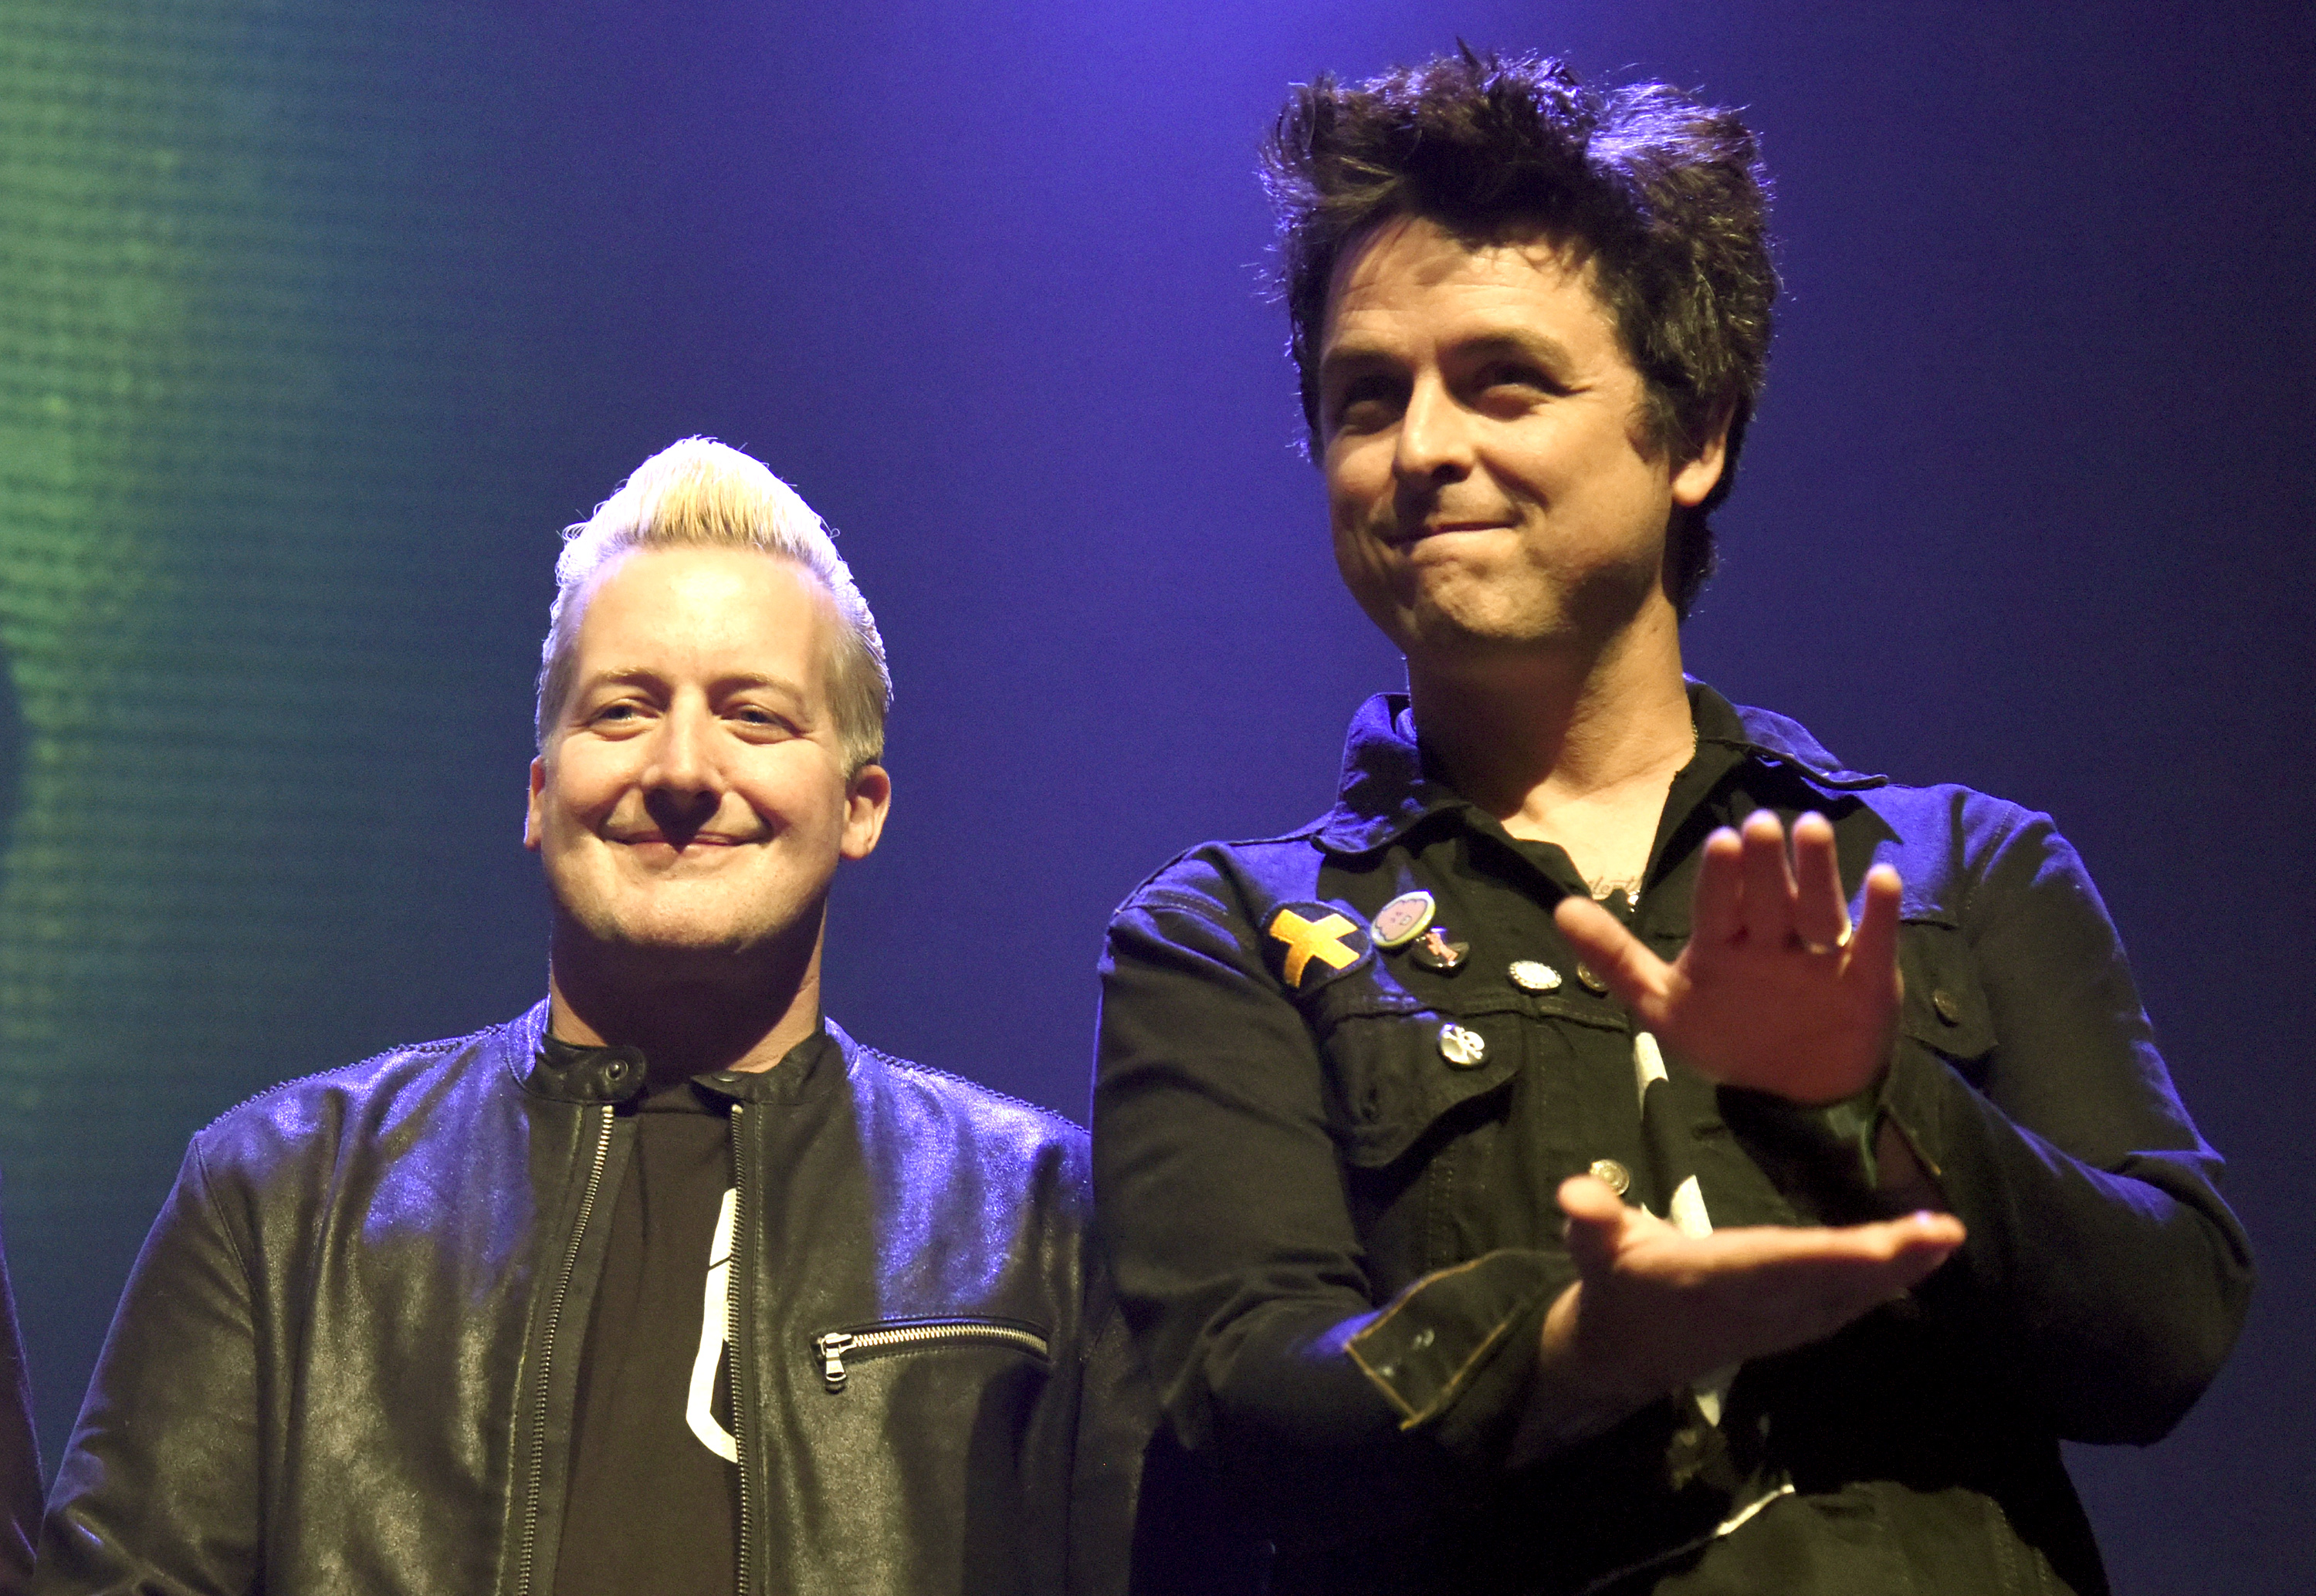 """Green Day sang """"American Idiot"""" in honor of Trump, and, slow clap"""